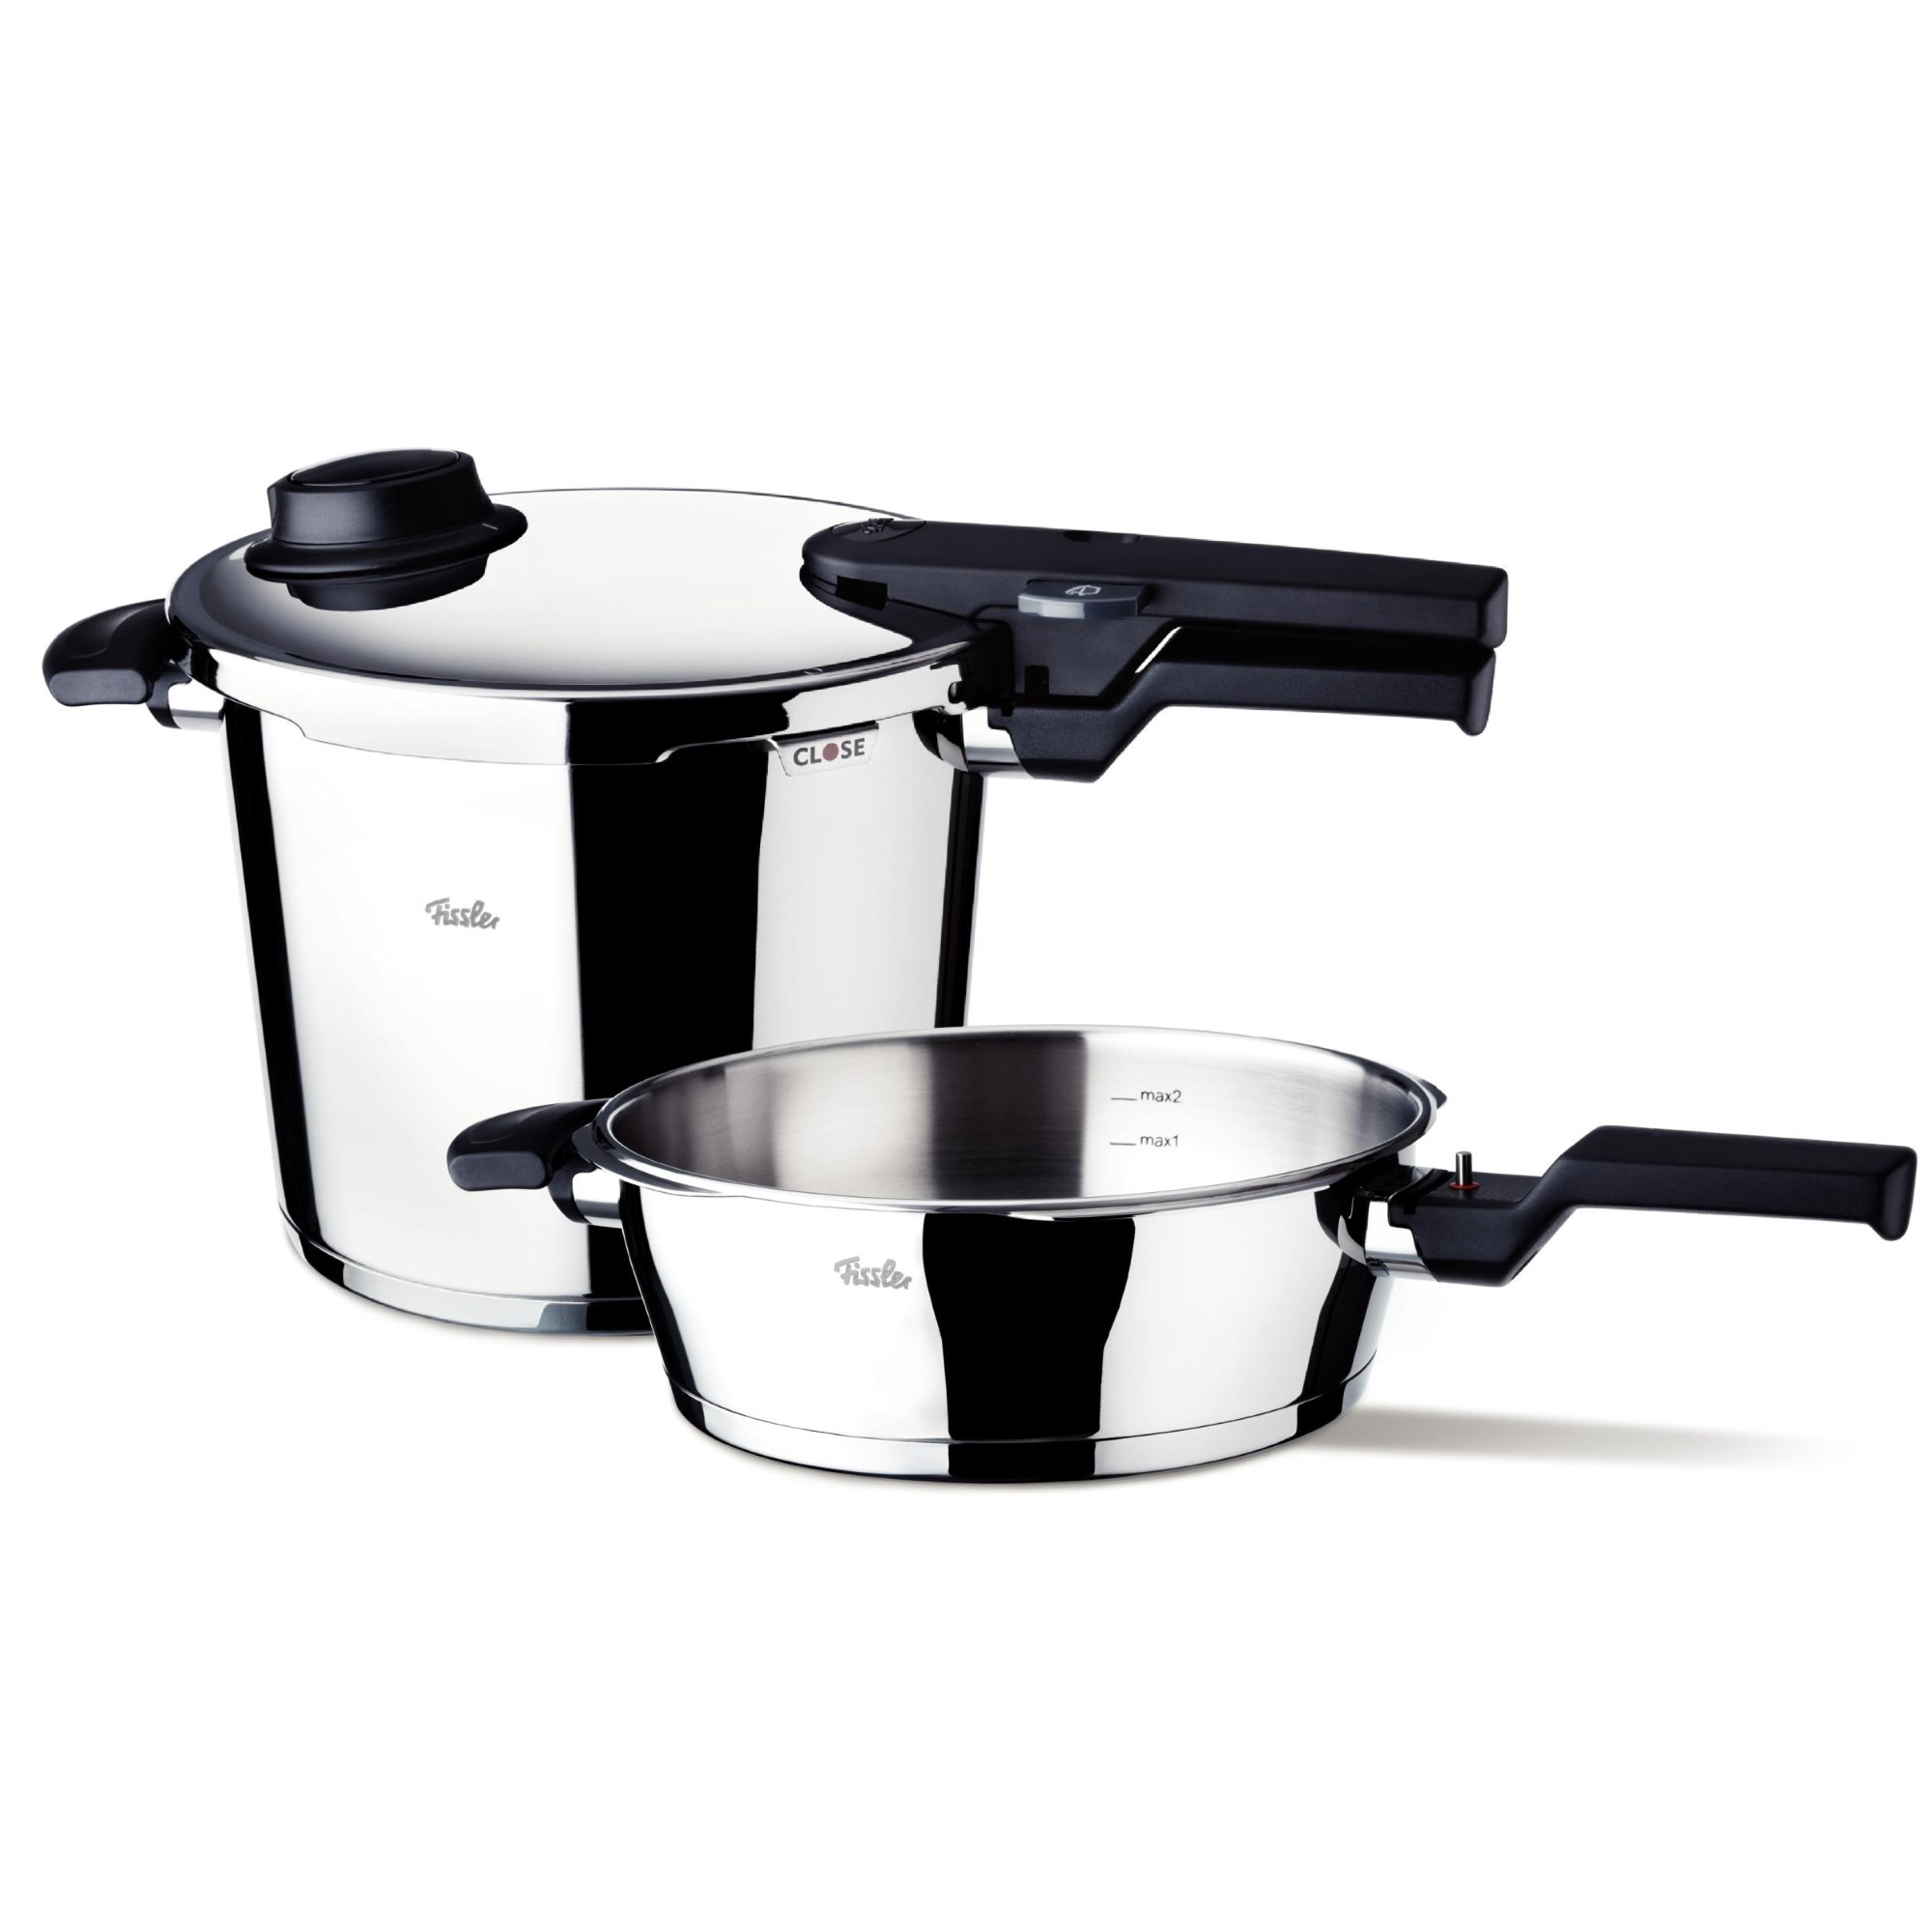 fissler schnellkochtopf vitavit comfort duo set 6 0 2 5 liter ebay. Black Bedroom Furniture Sets. Home Design Ideas